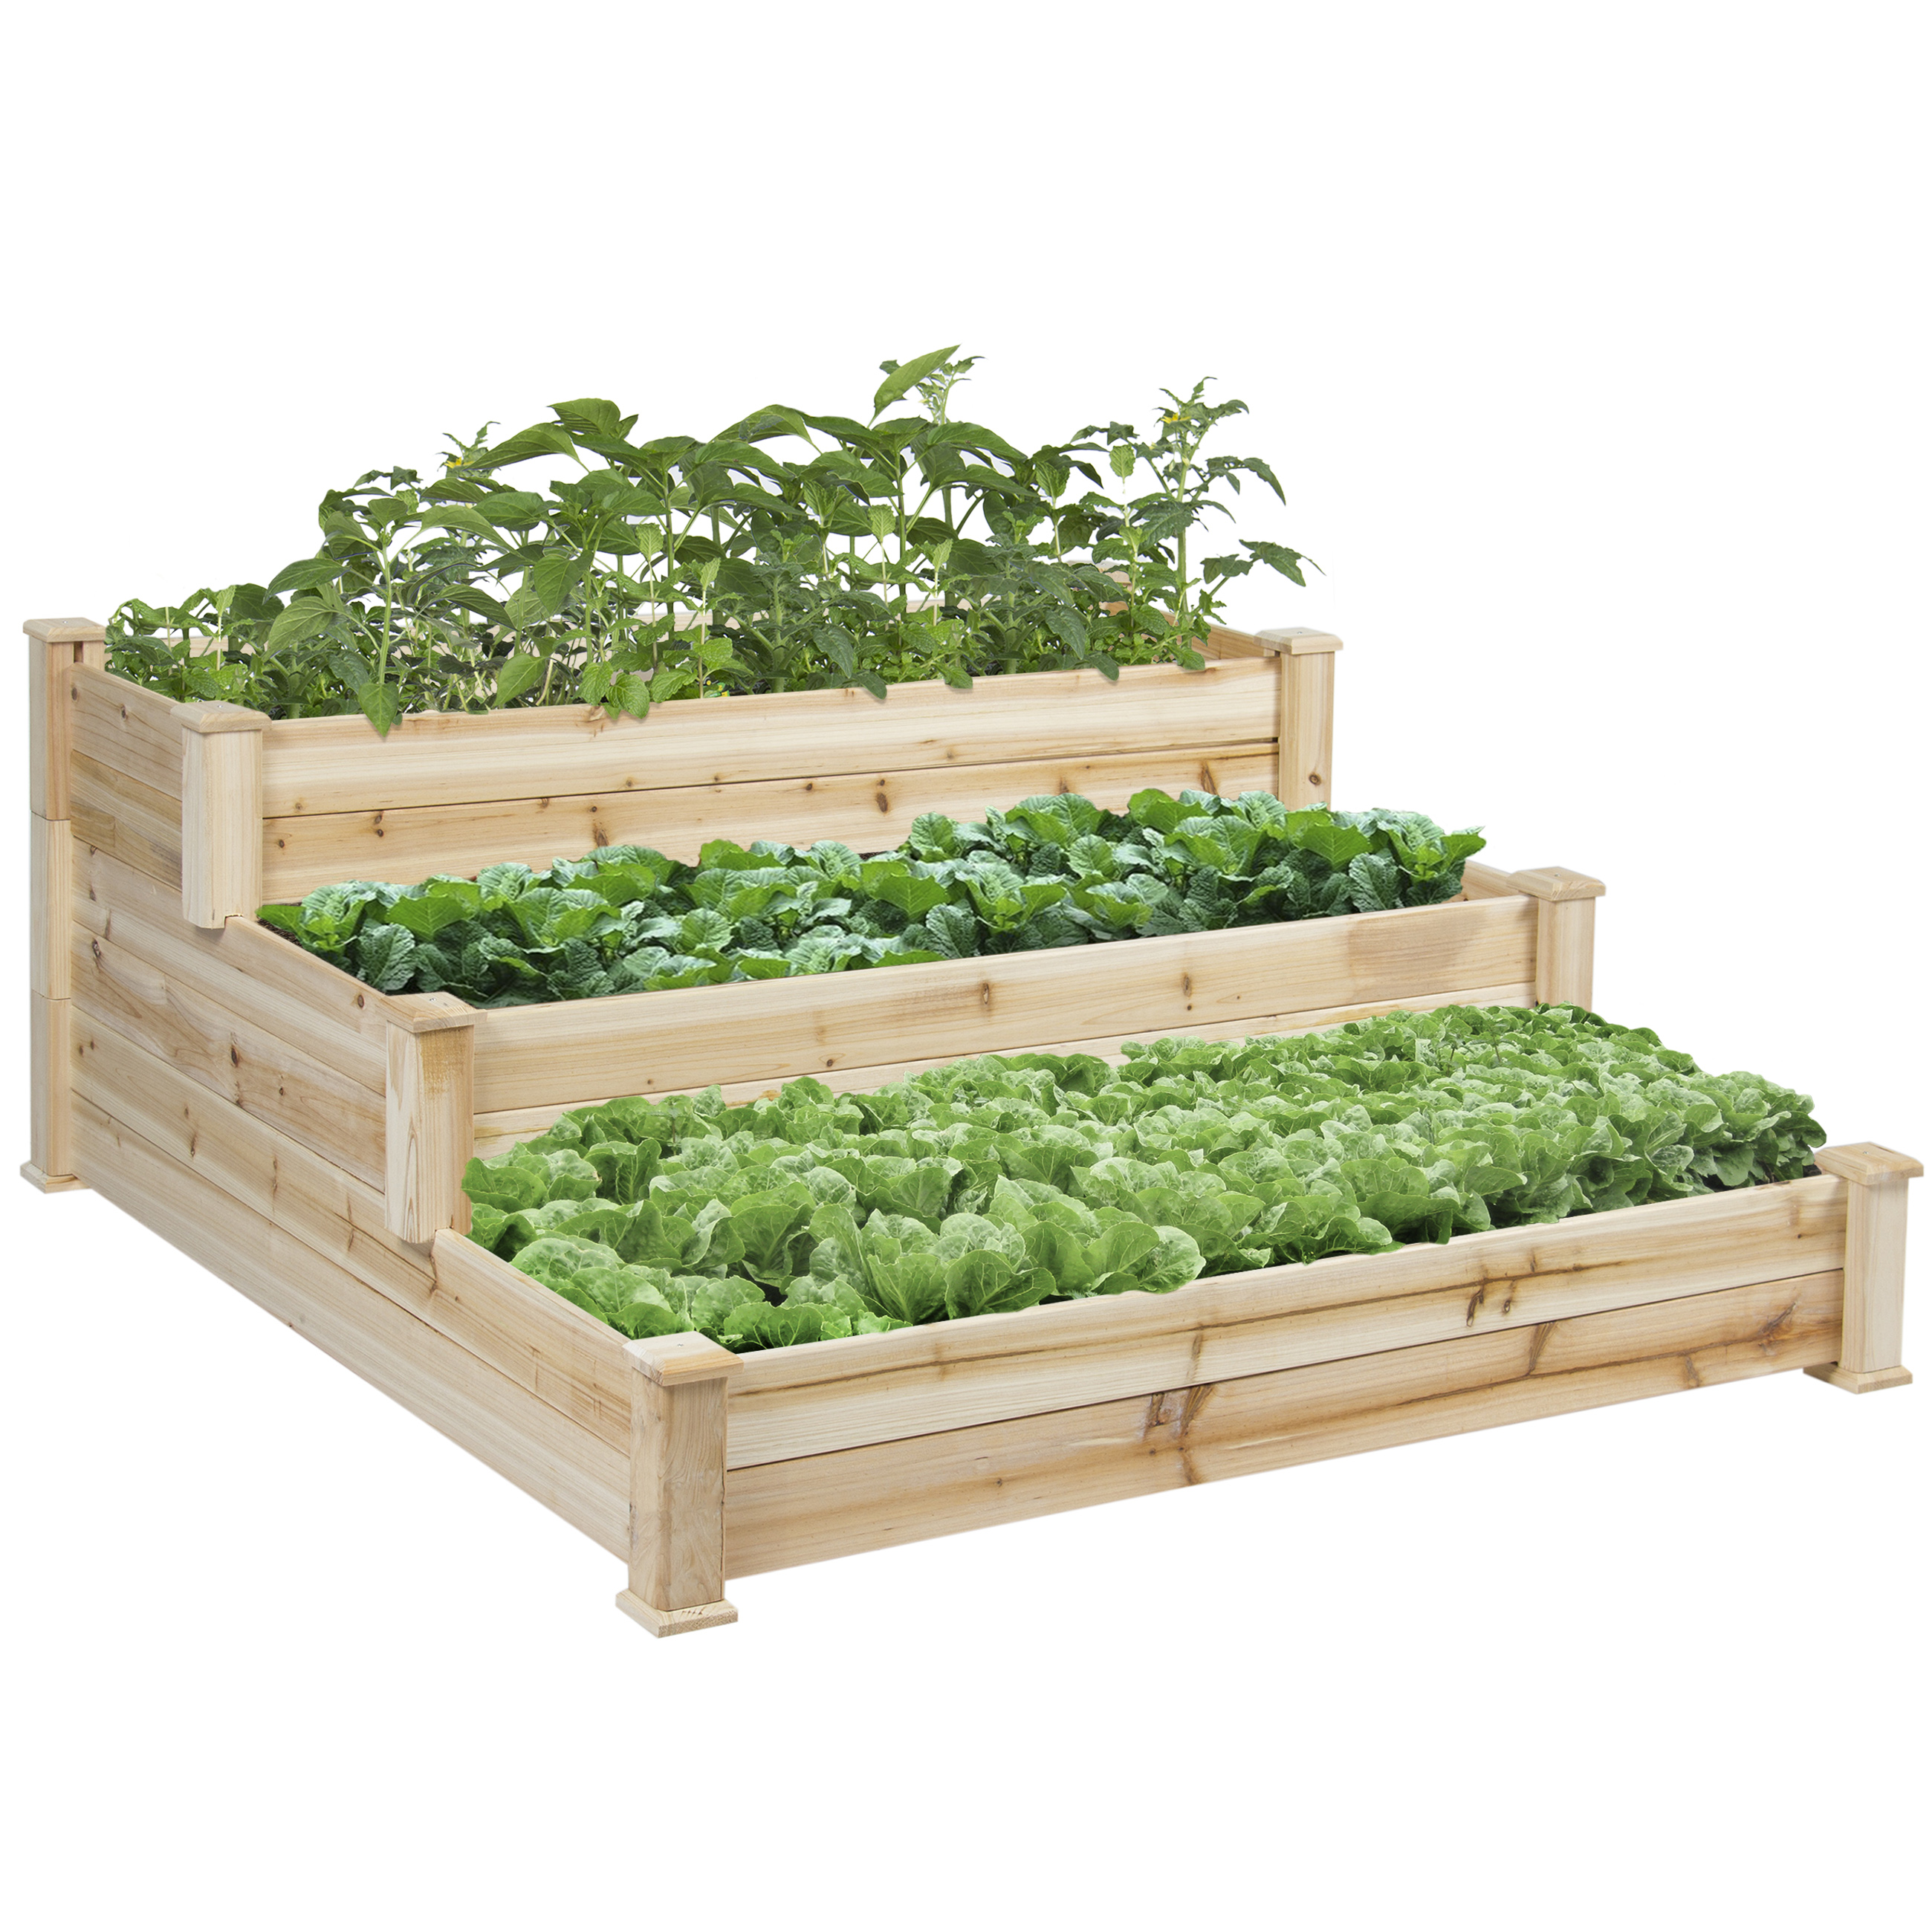 choice garden products wooden vegetable bed tier gardening best shop planter kit rakuten raised for elevated bestchoiceproducts product outdoor